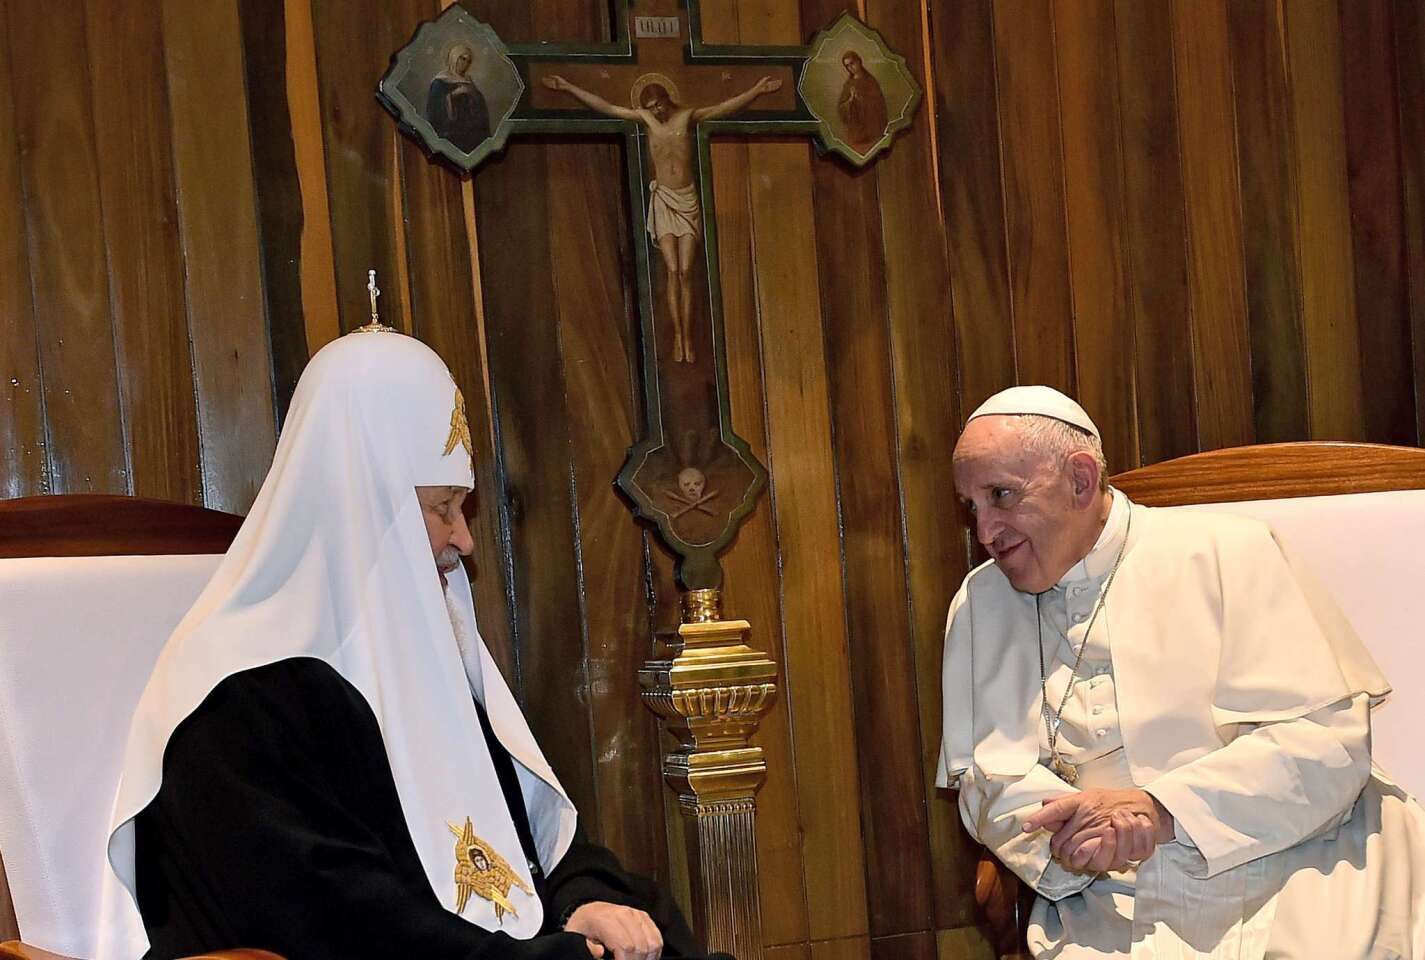 Pope Francis, right, leader of the Roman Catholic Church, meets with Patriarch Kirill, the head of the Russian Orthodox Church, in Havana.